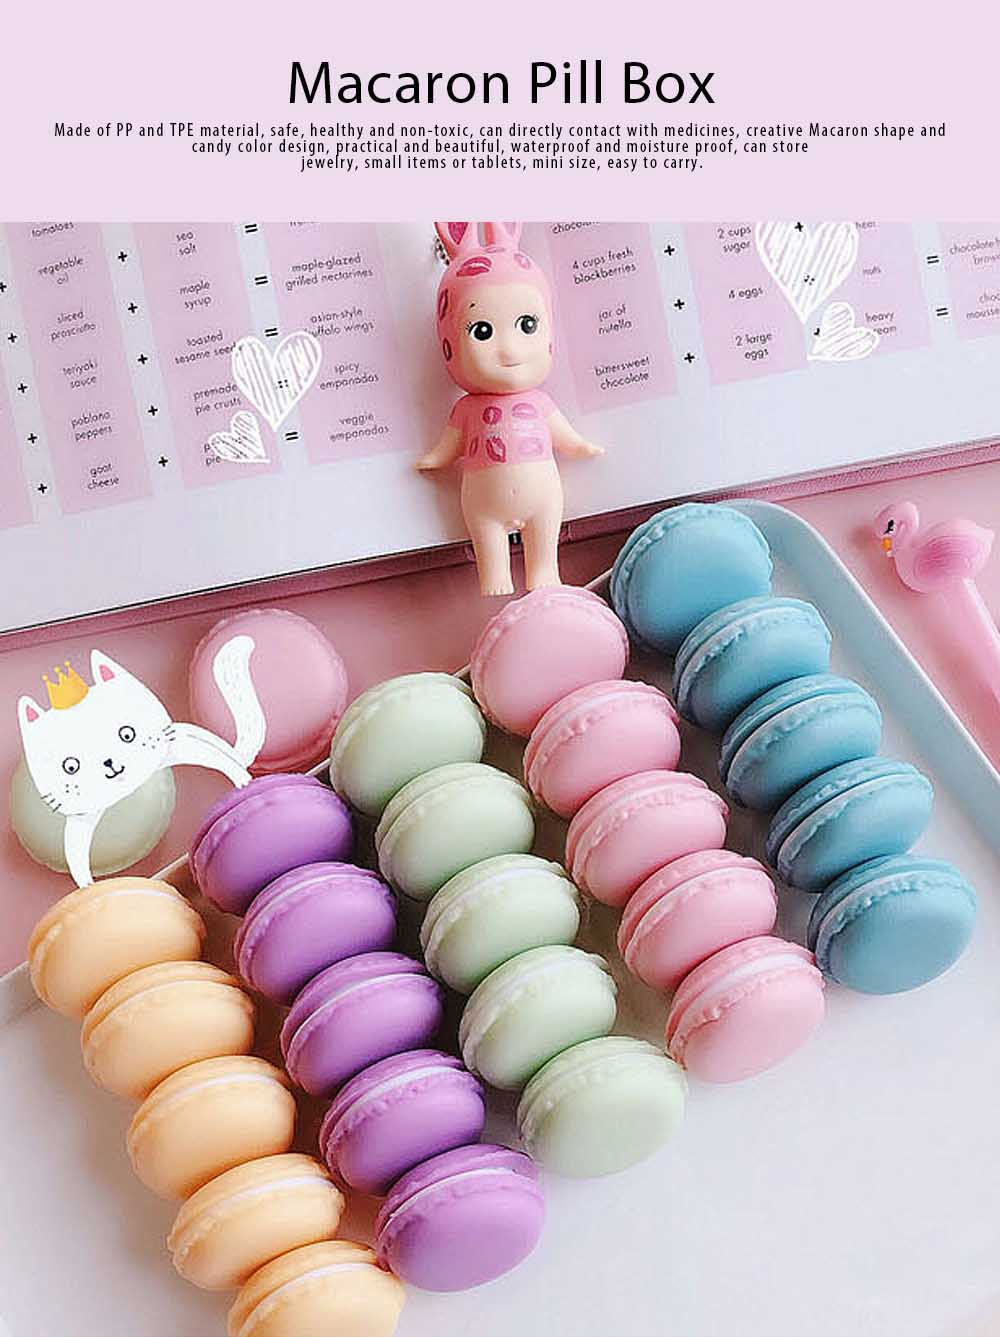 Macaron Medicine Box PP Portable Candy Color Pill Jewelry Organizer Creativity Cute Outdoor Pill Box Tablets Container 0